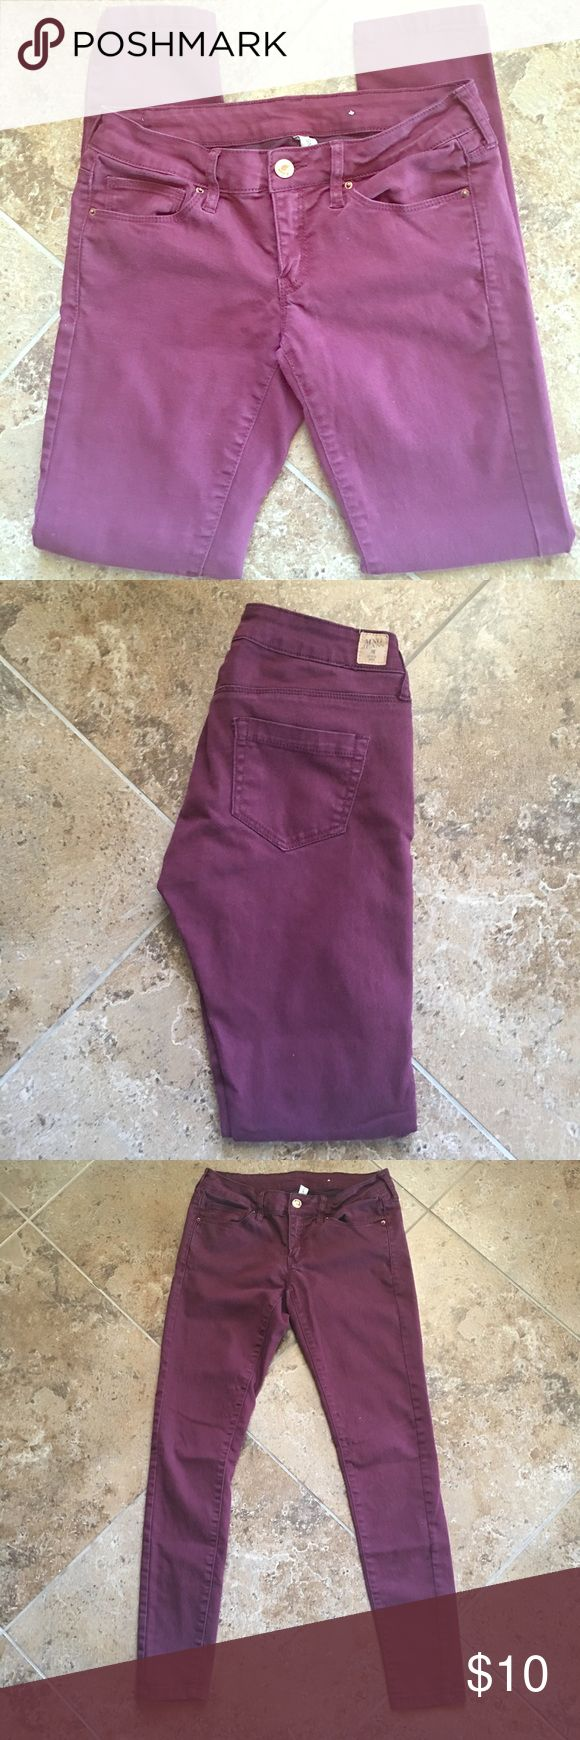 "MNG Purple Skinny Pants Purple MNG skinny pants. Very stretchy and comfortable material. 69% cotton, 28% polyester, 3% elastane. Low-rise style. Measurements laying flat: 28"" inseam, 13.5"" across top.                                         ▫️No trades ▫️Offers welcomed (through offer button only, NO low balls) ▫️I'm unable to model ▫️Bundle to save! Pants Skinny"